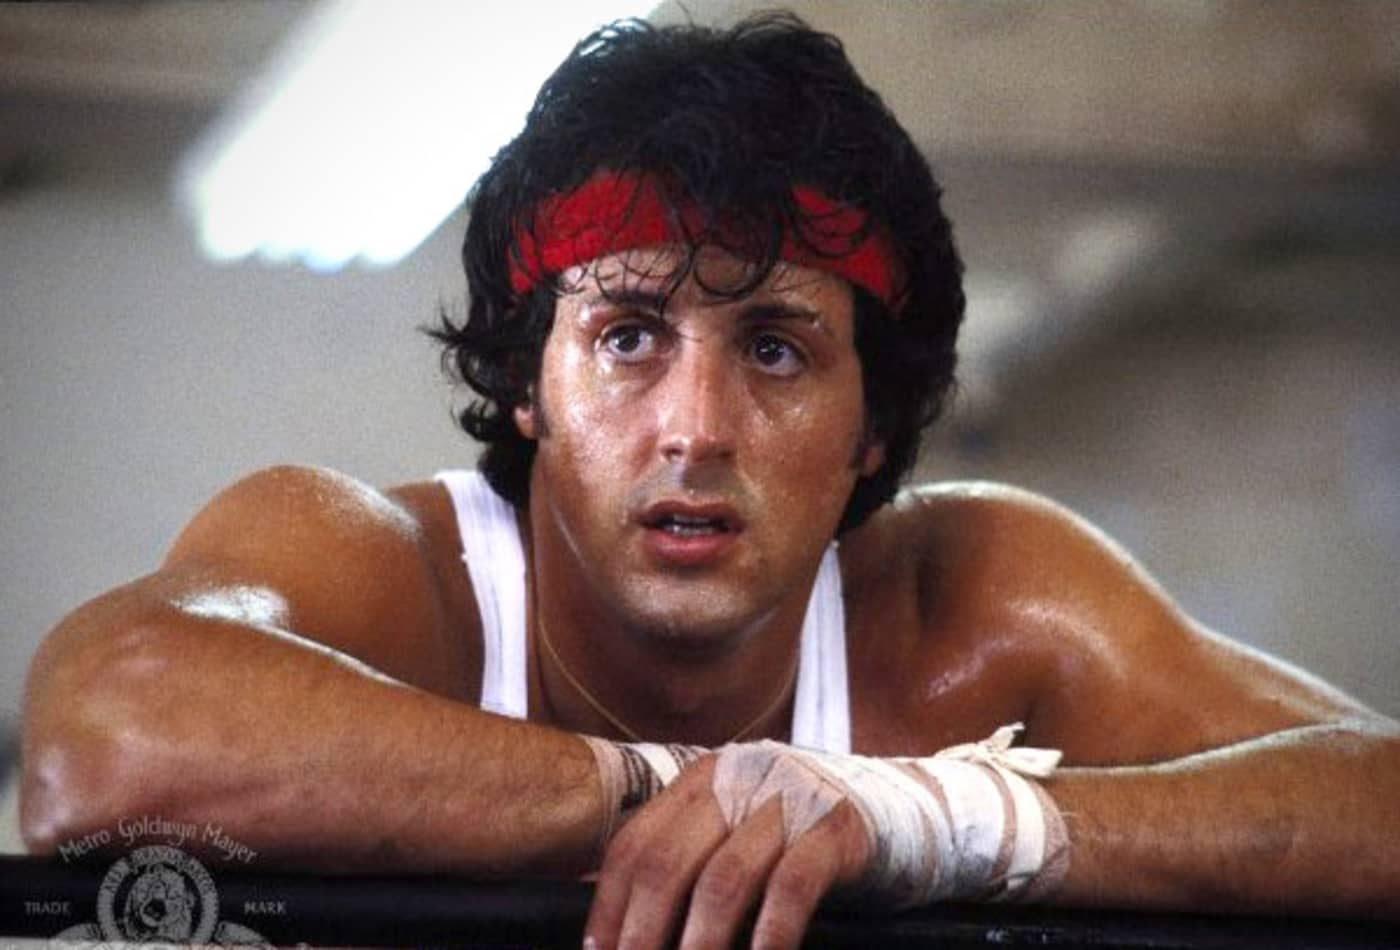 SS_Highest_Grossing_Sports_Movies_Rocky_II.jpg